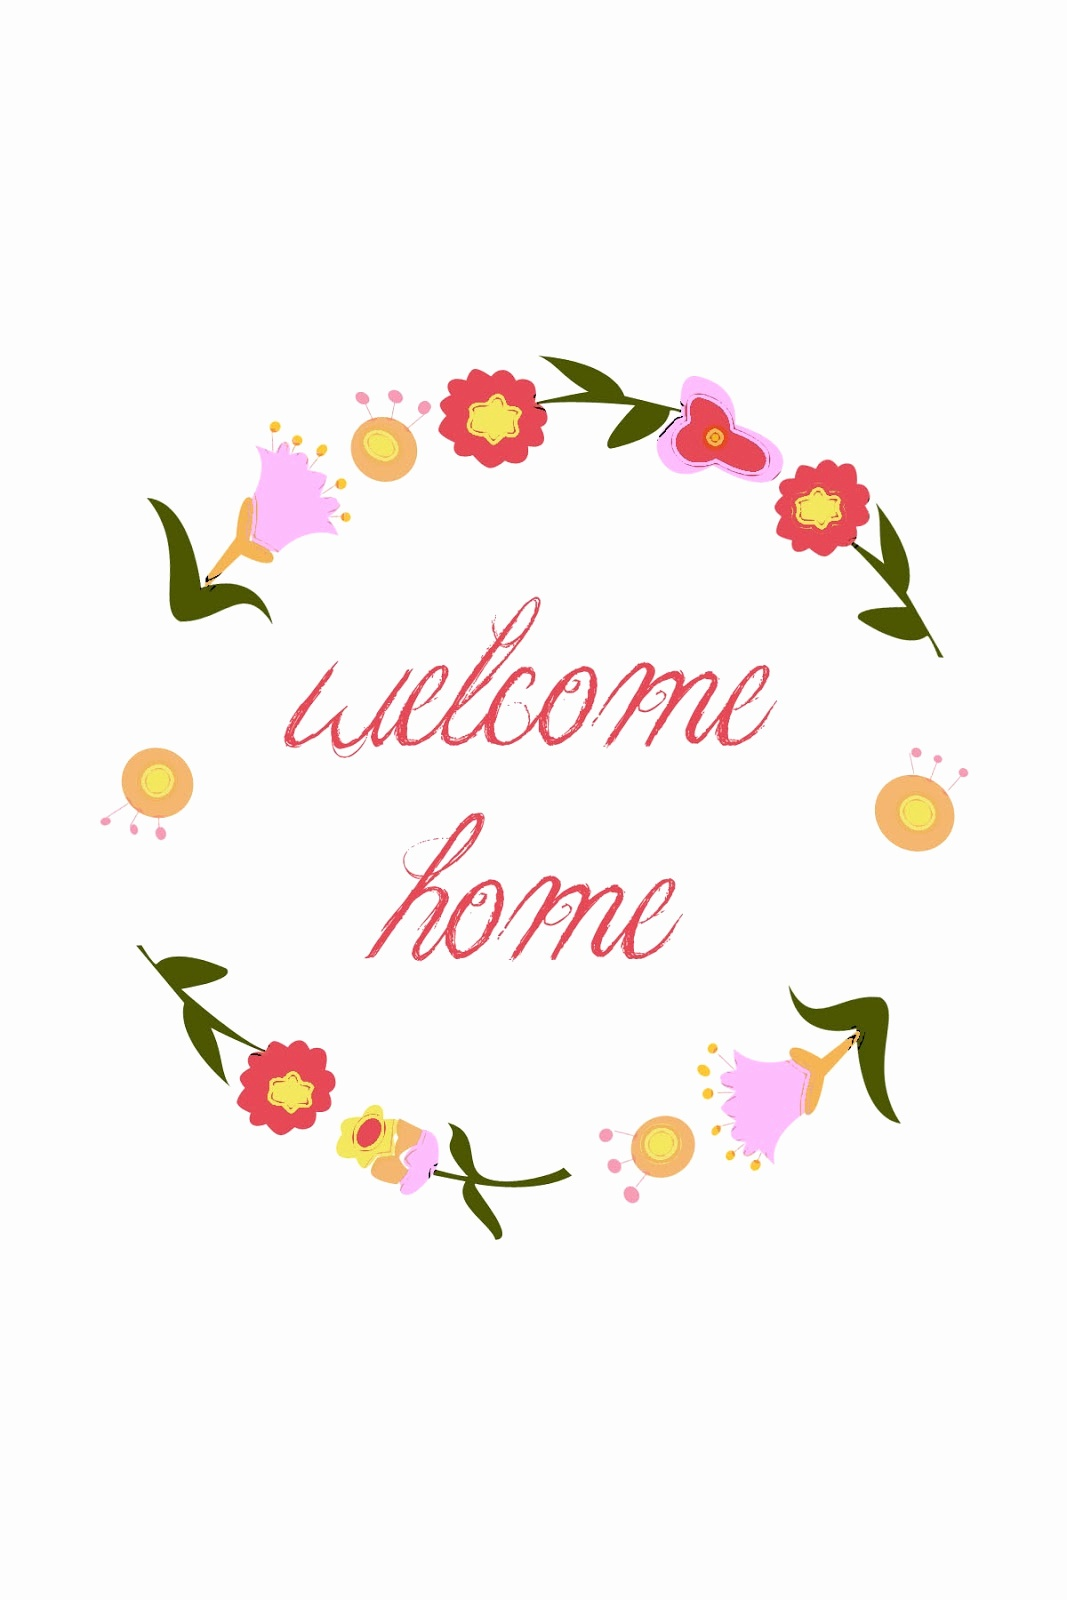 Free Printable Welcome Home Cards - Tduck.ca - Free Printable Welcome Cards